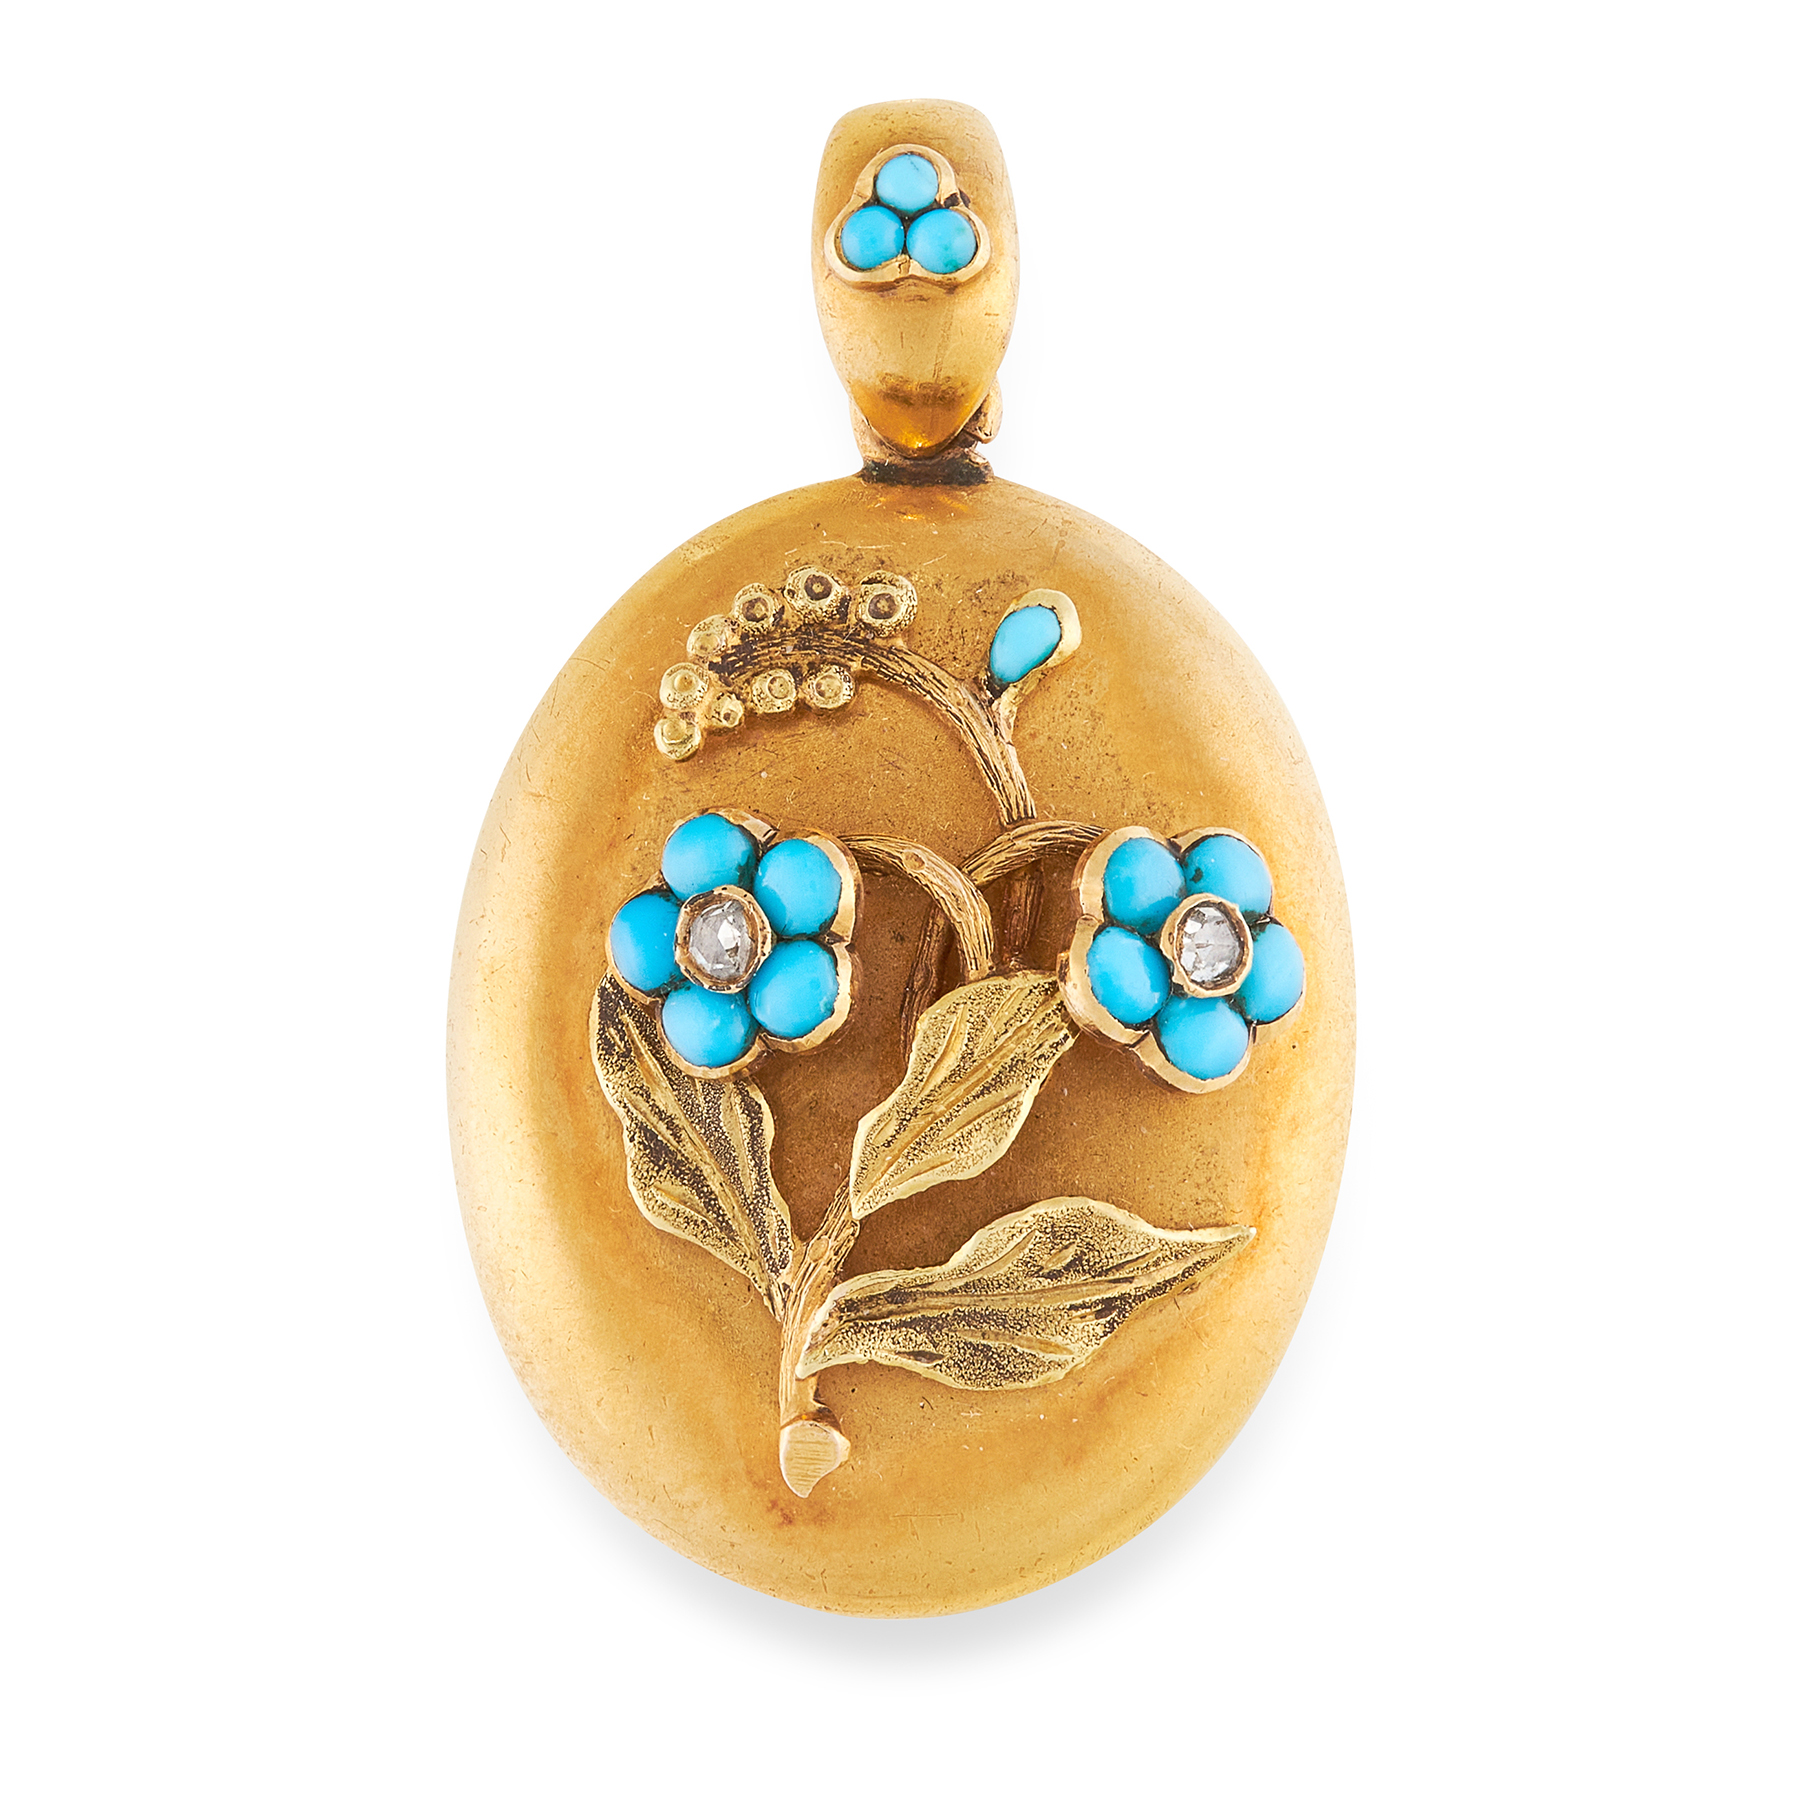 AN ANTIQUE TURQUOISE AND DIAMOND MOURNING LOCKET PENDANT, 19TH CENTURY in yellow gold, the oval body